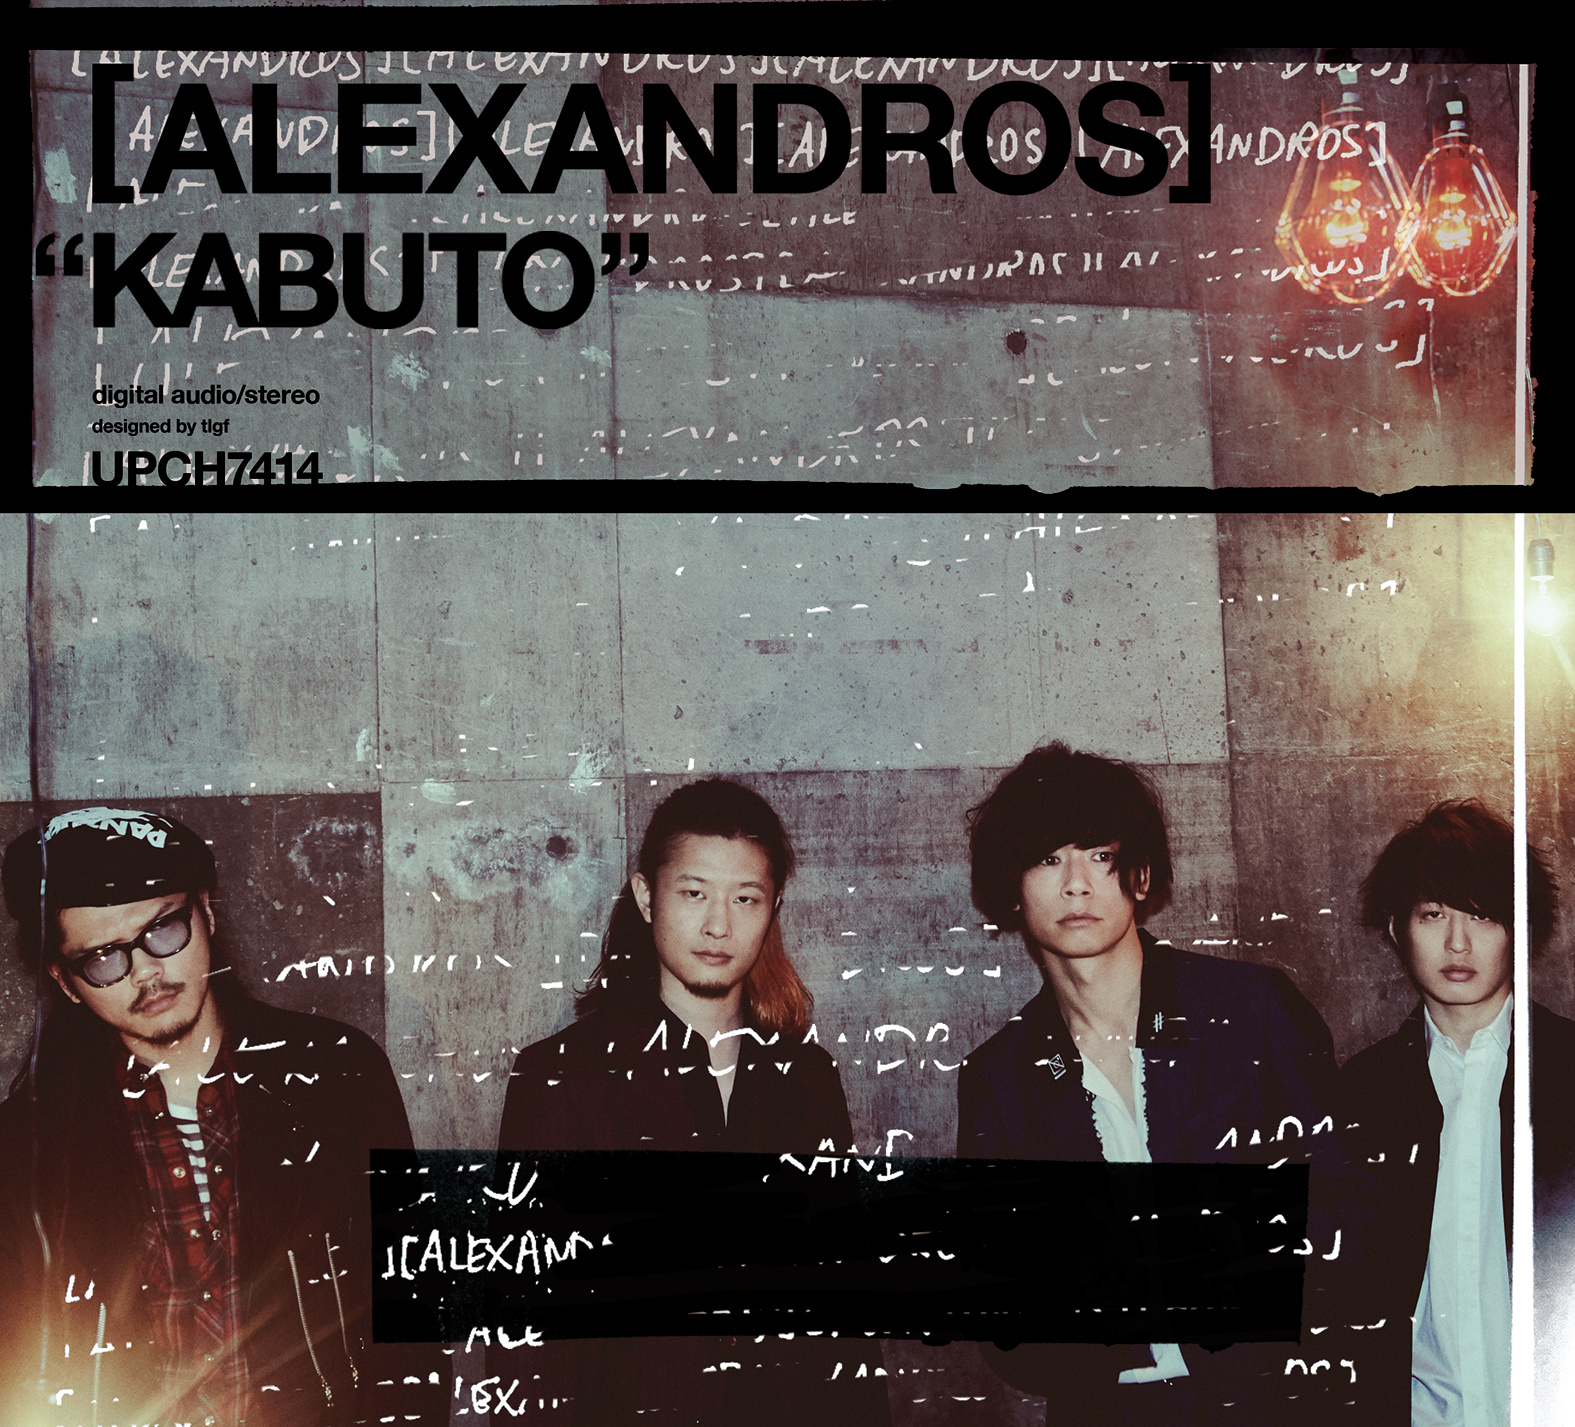 [ALEXANDROS] KABUTO Limited Edition